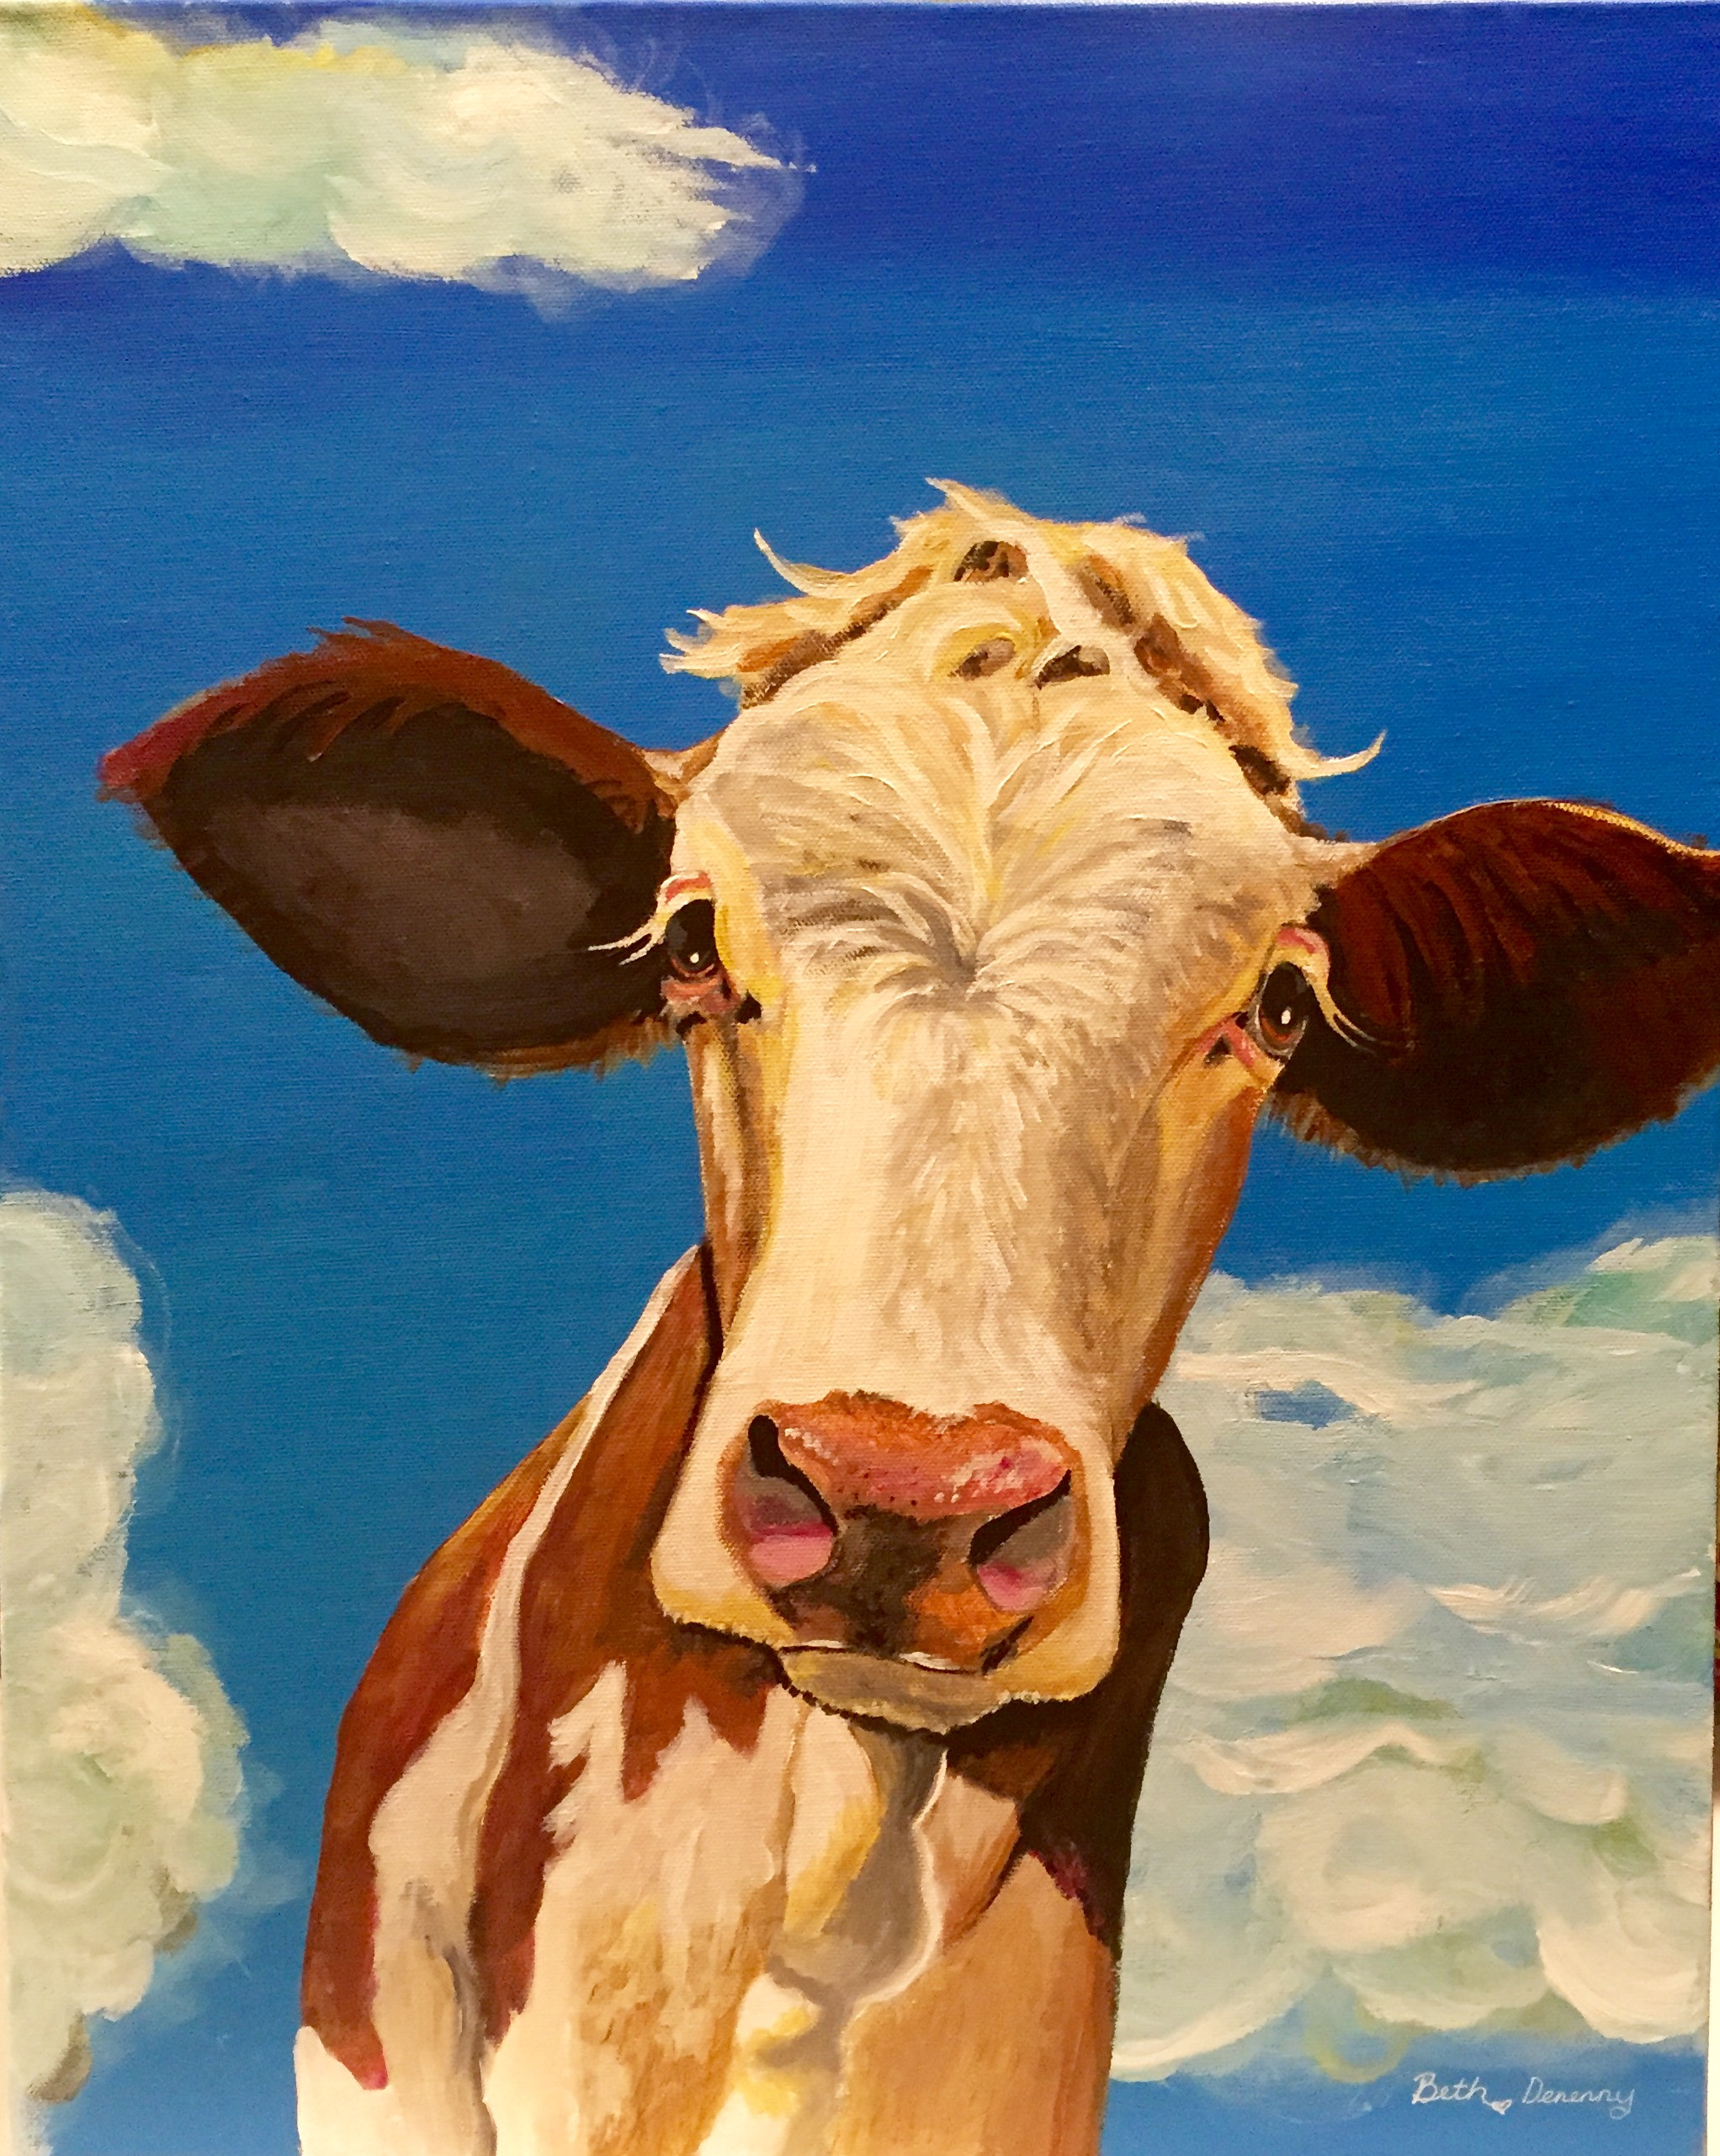 Maeve, the Cow